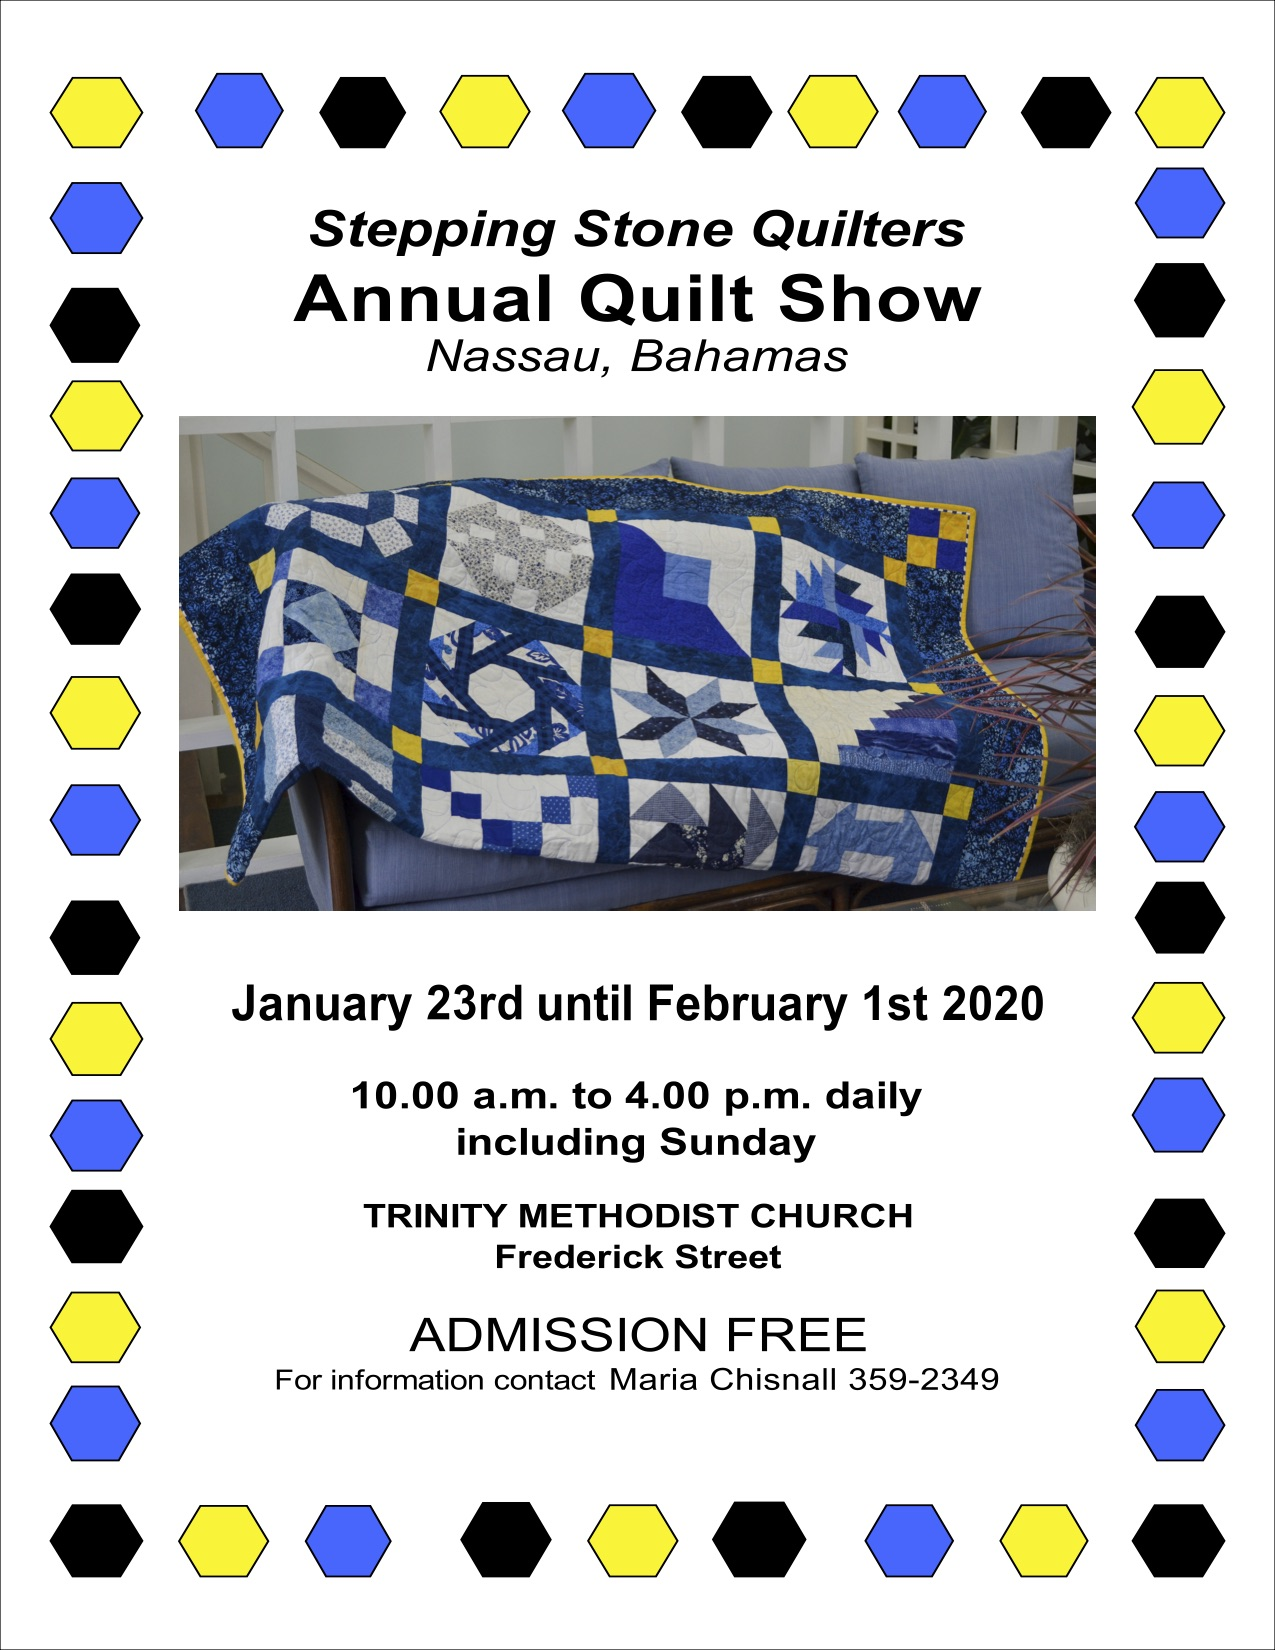 Stepping Stone Quilters Annual Quilt Show